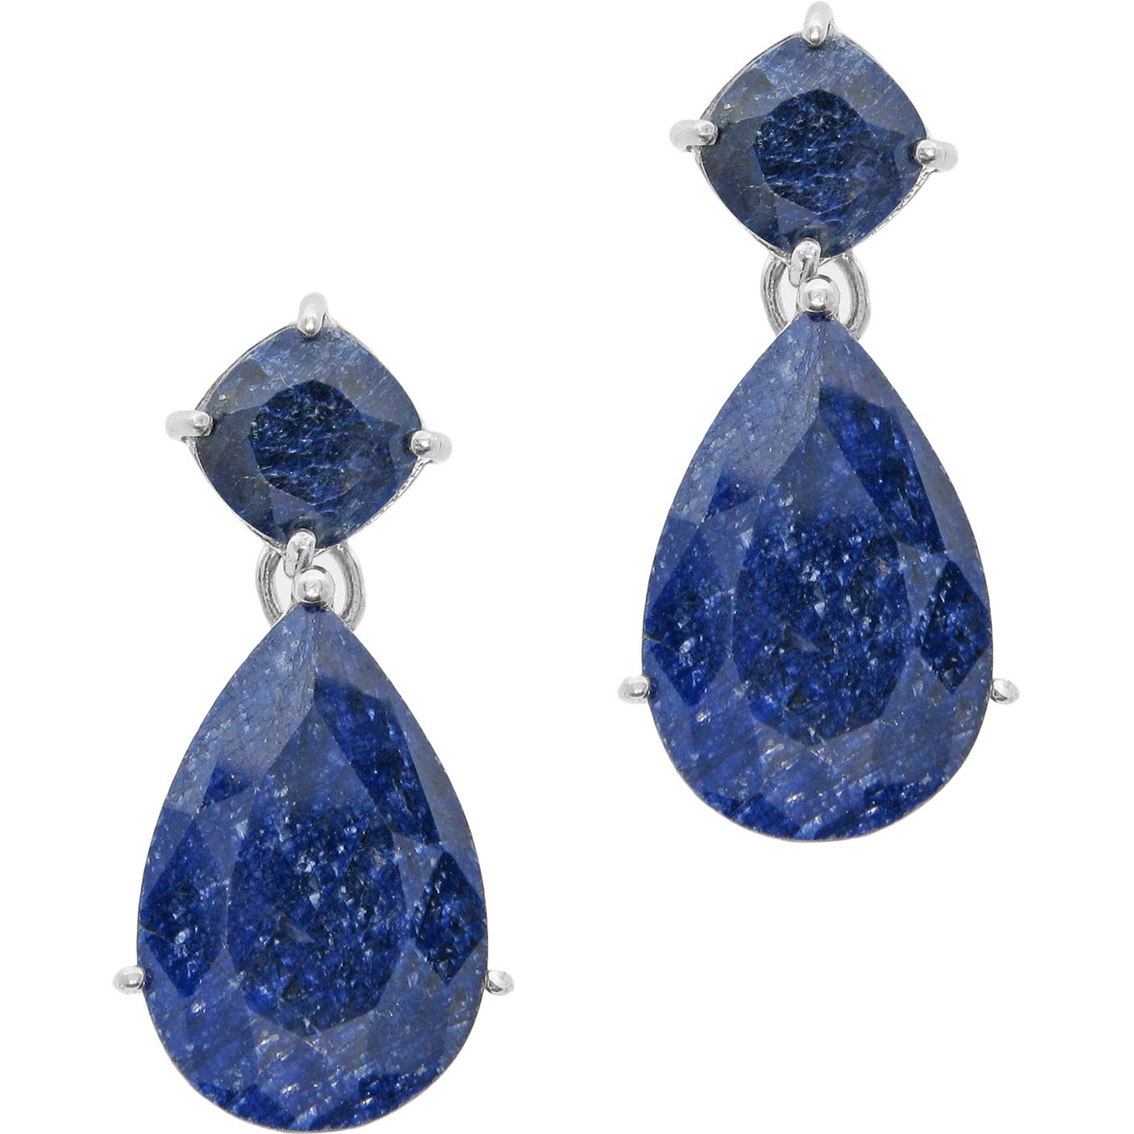 Sterling Silver Rough-cut Sapphire Earrings | Gemstone ...Unpolished Sapphire Necklace